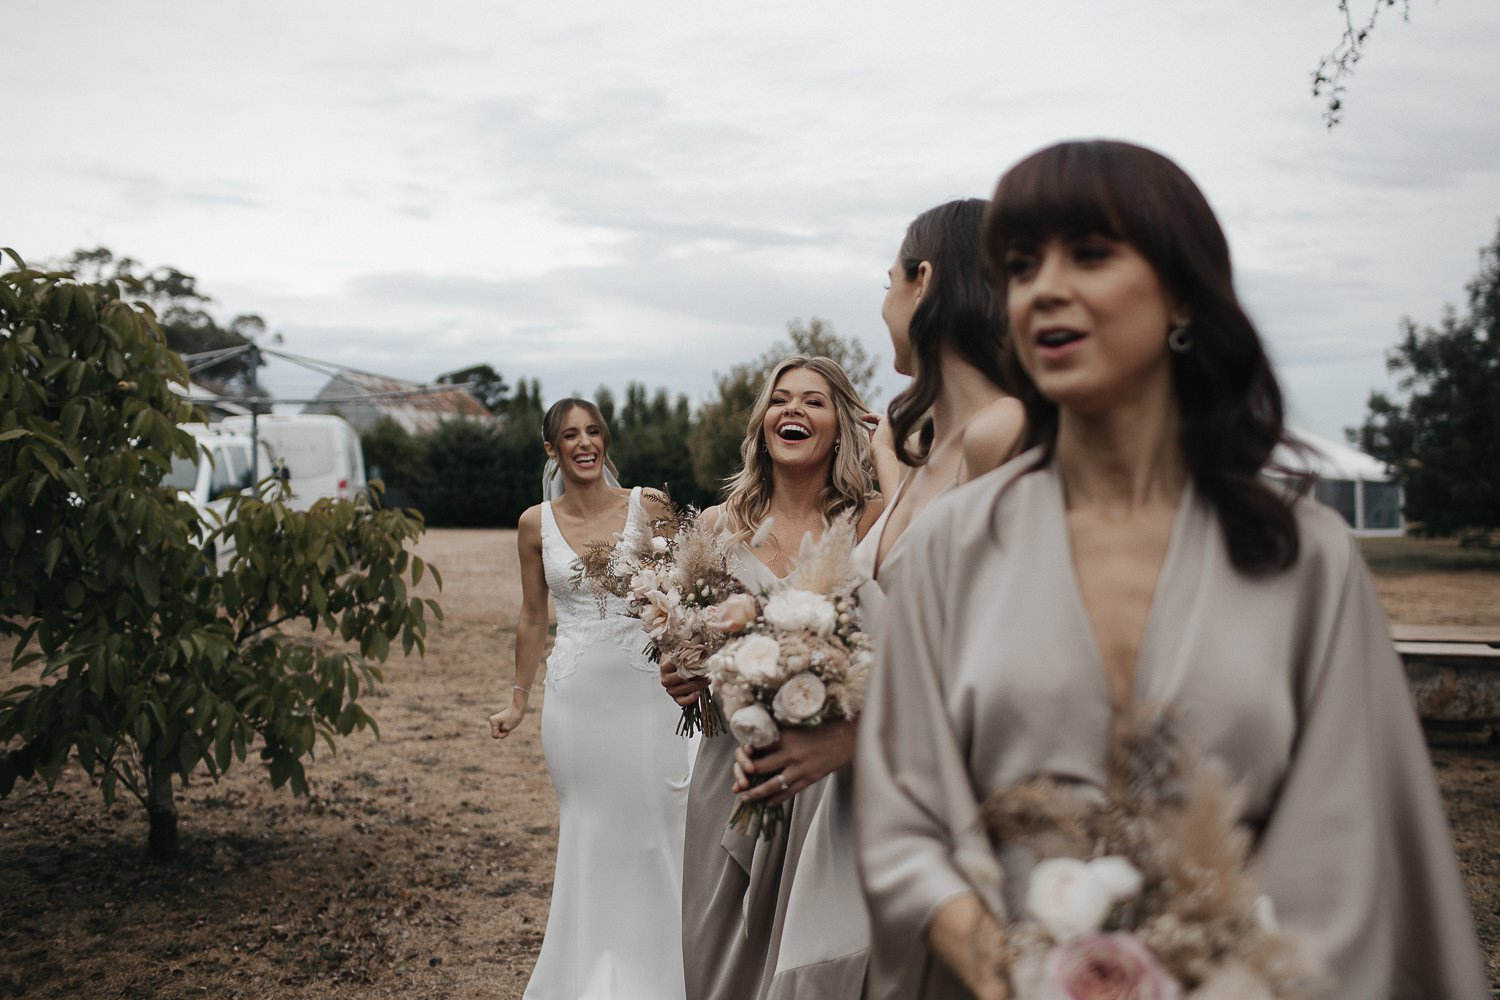 private-property-wedding-relaxed-melbourne-fun-documentary-photography_0068.jpg